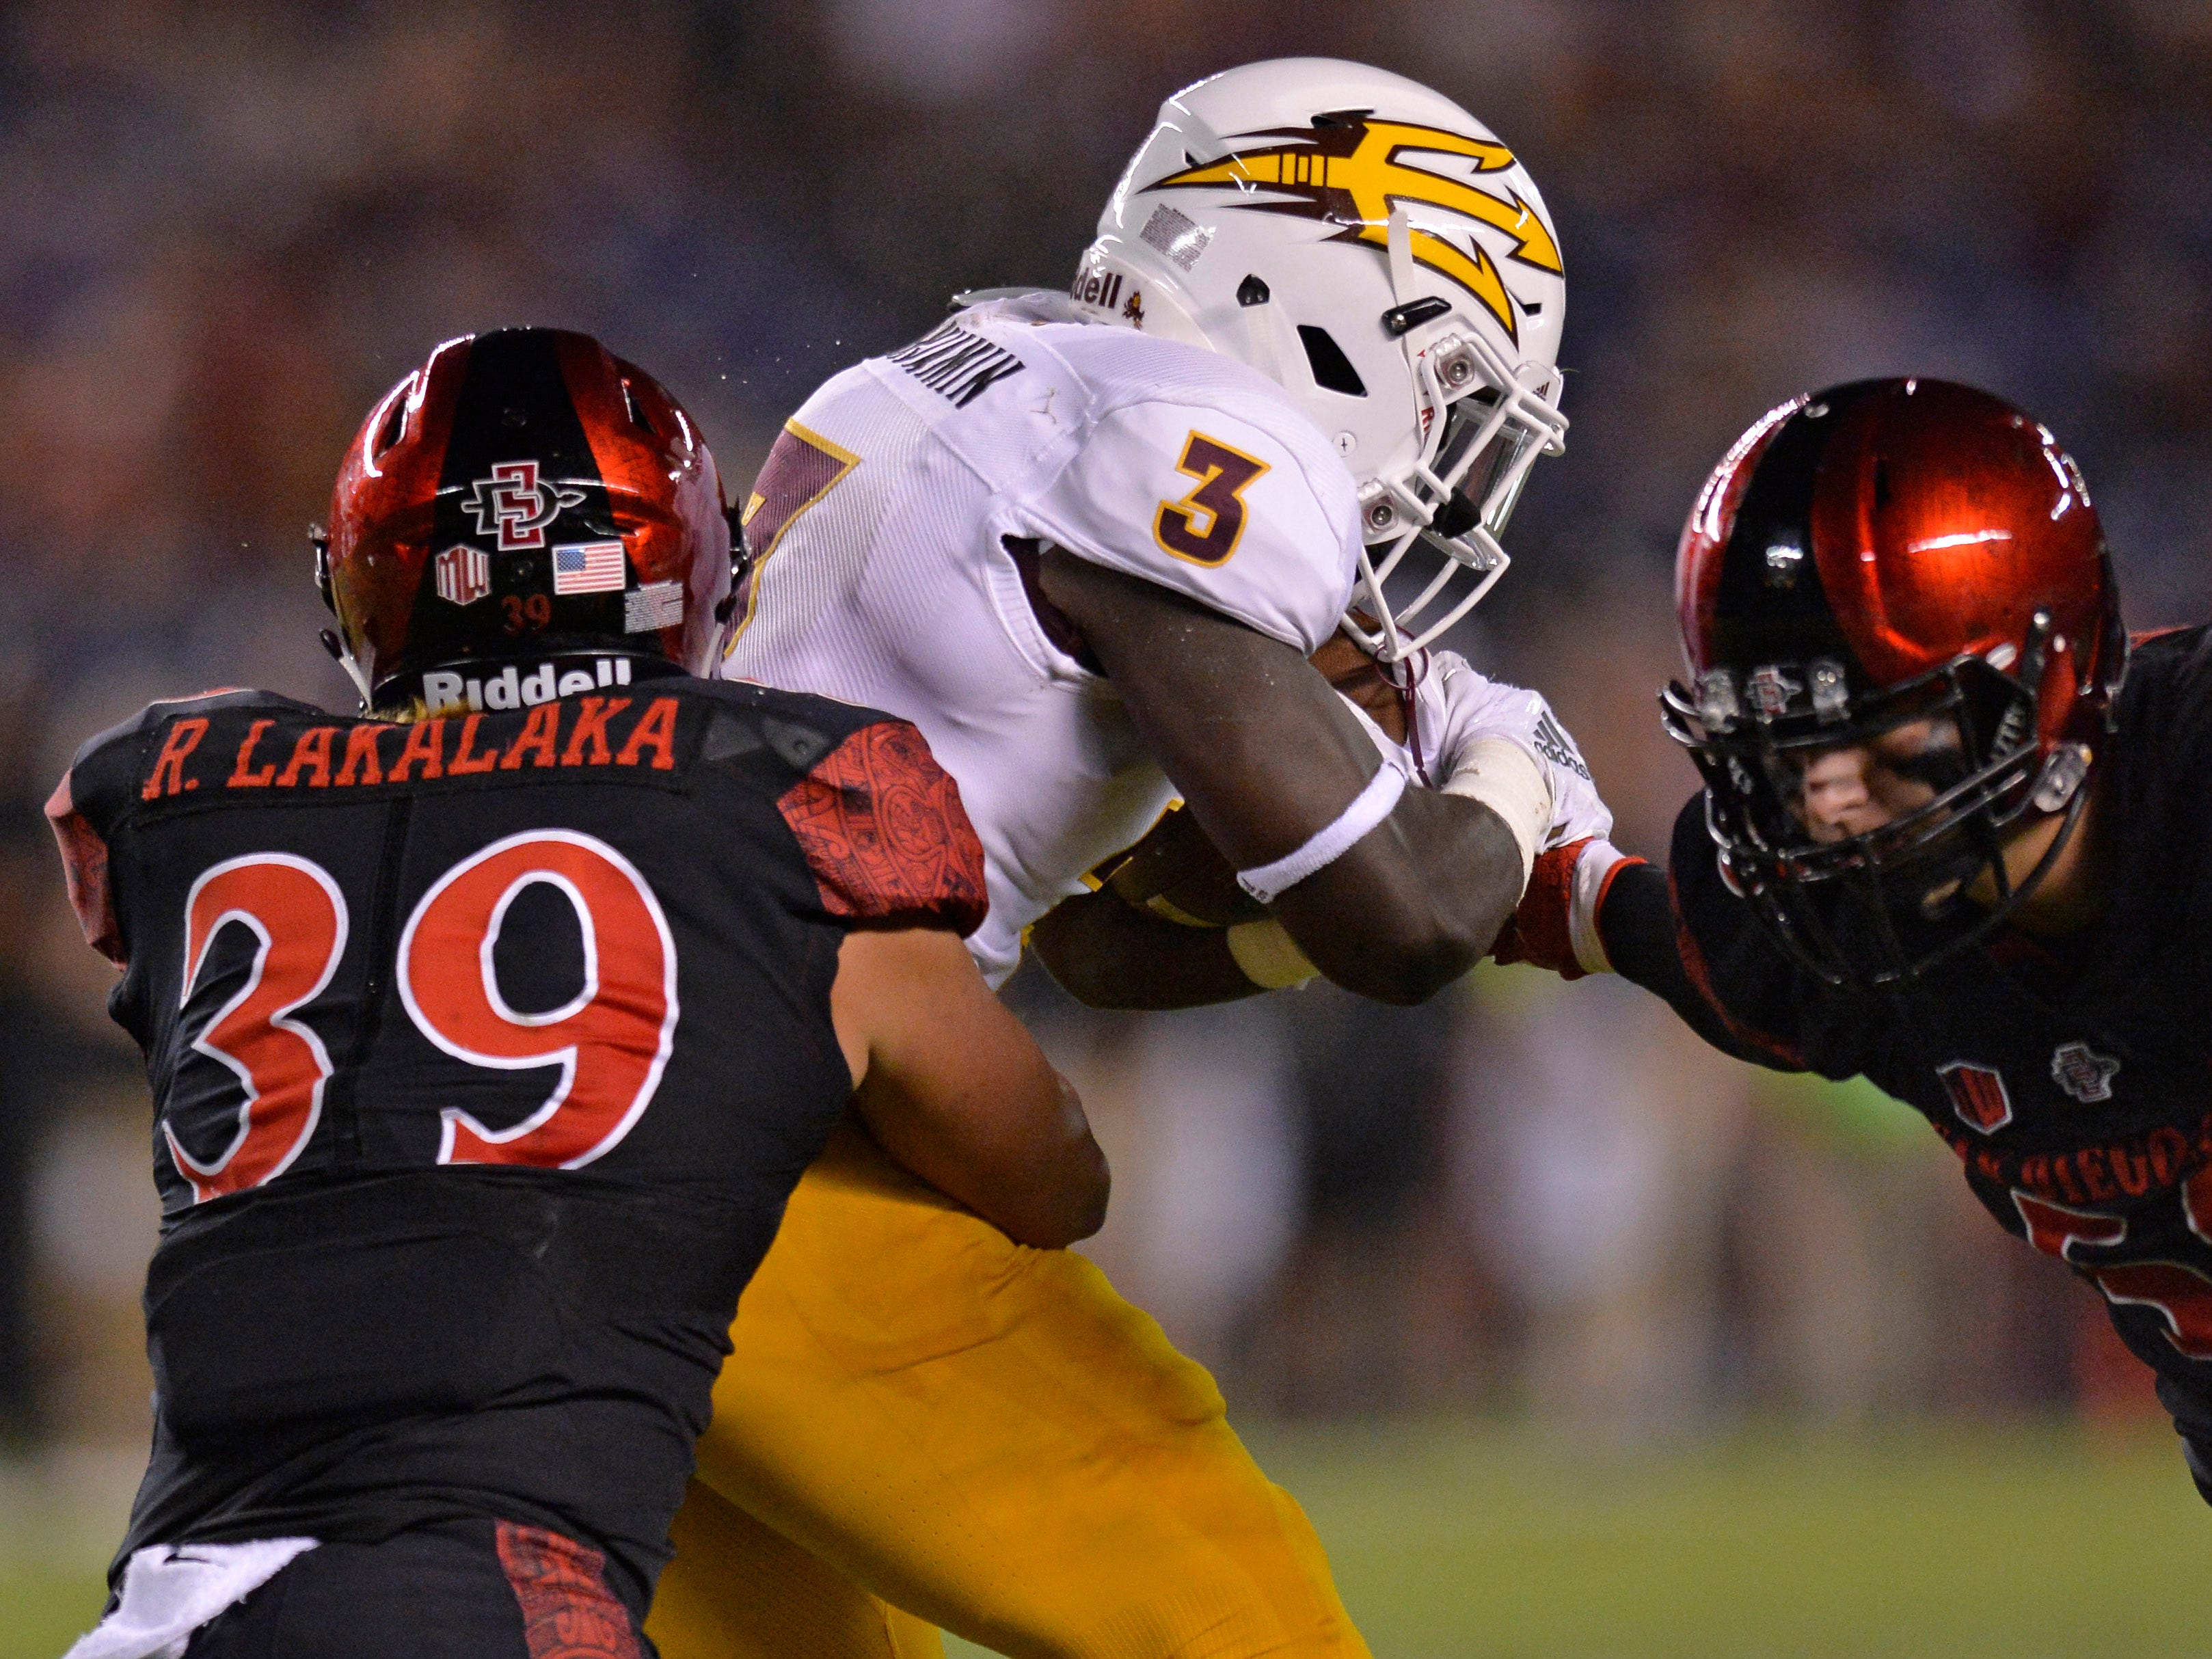 Sep 15, 2018; San Diego, CA, USA; Arizona State Sun Devils running back Eno Benjamin (3) is defended by San Diego State Aztecs linebacker Ronley Lakalaka (39) and defensive lineman Connor Mitchell (58) during the first quarter at SDCCU Stadium. Mandatory Credit: Jake Roth-USA TODAY Sports